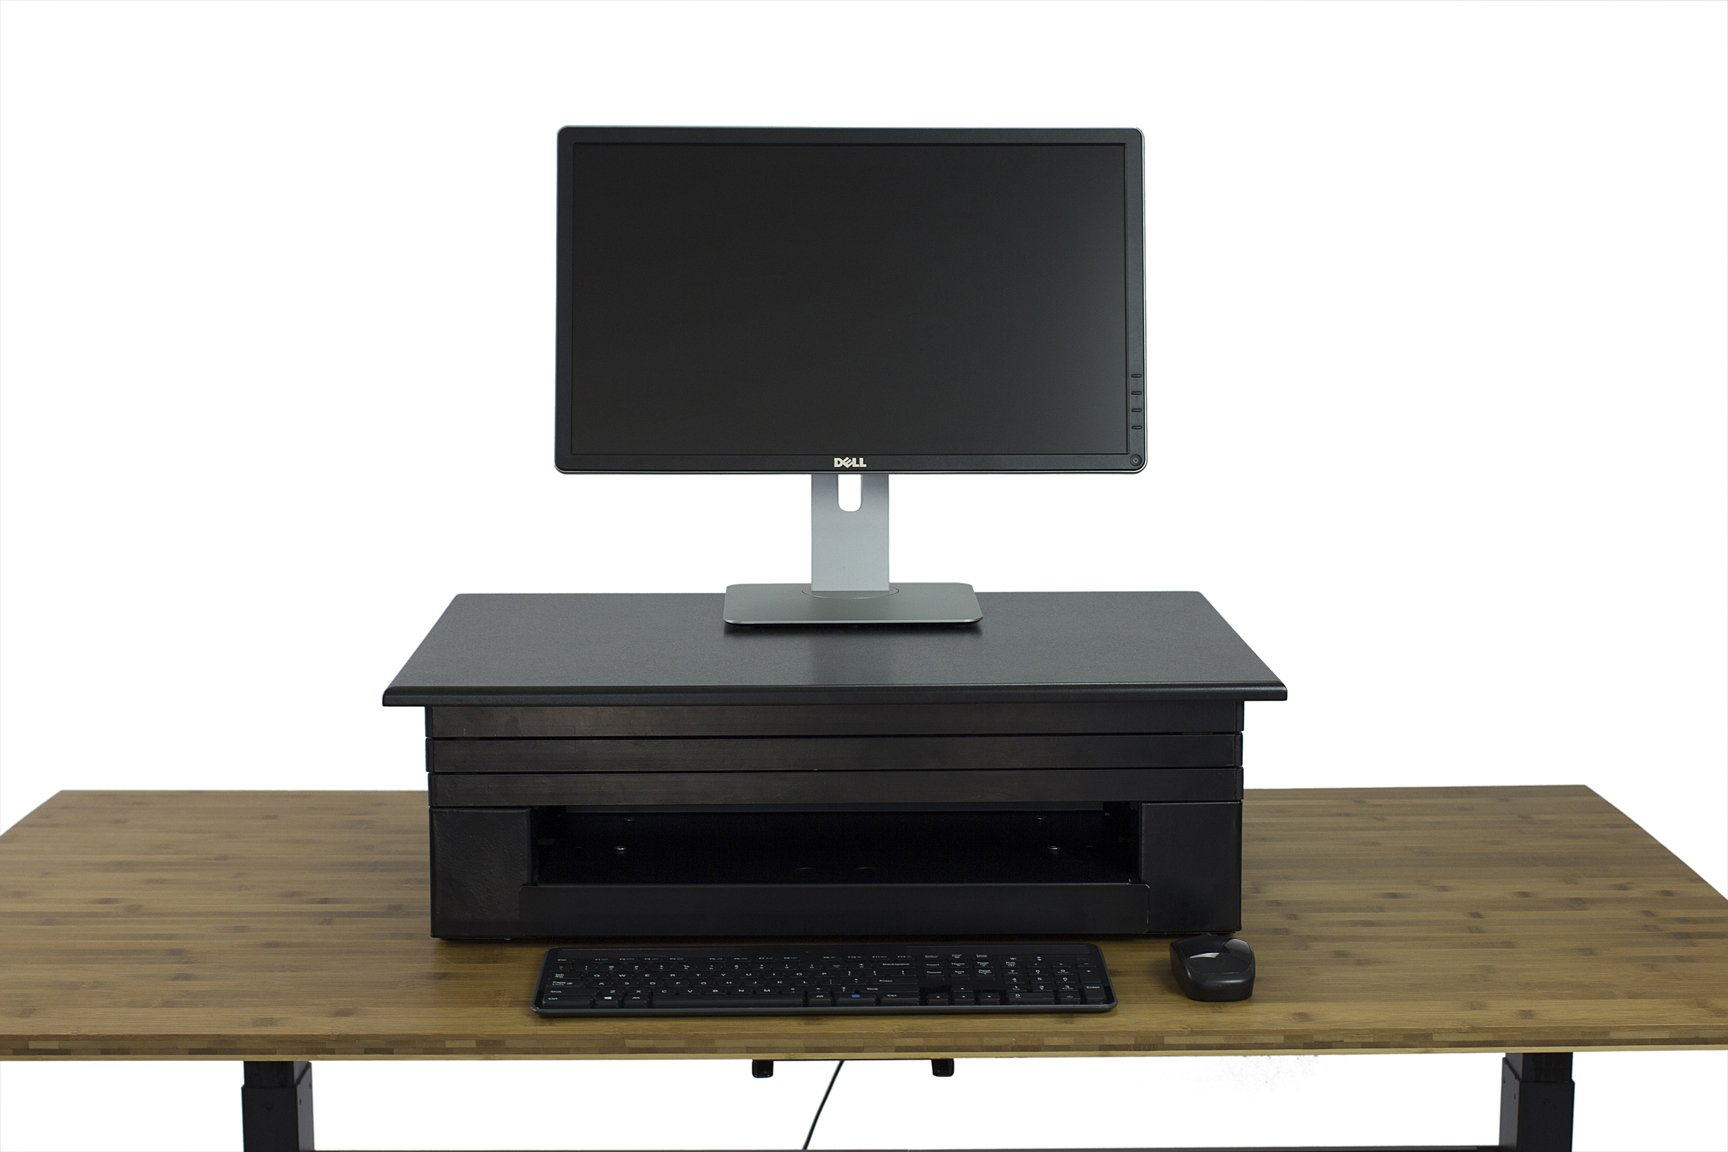 Uncaged Ergonomics Electric Change Desk, Height Adjustable Standing Desk Converter, Ergonomic Stand Up Desk Conversion Kit (CDE-b) by Uncaged Ergonomics (Image #6)